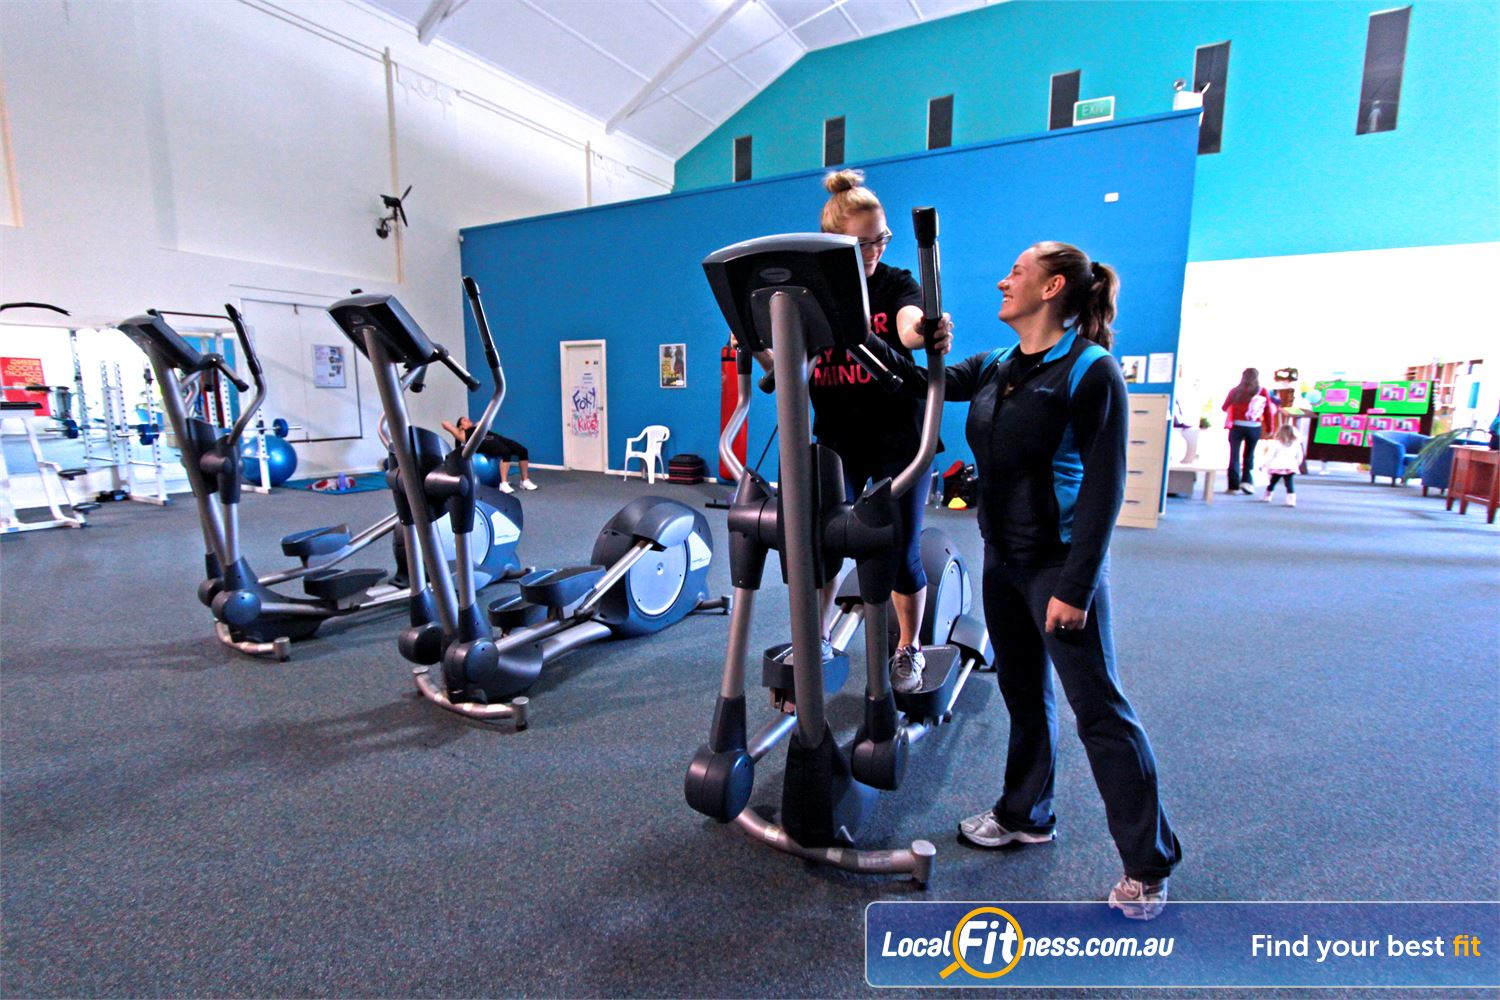 Fernwood Fitness Woonona Fernwood Woonona gym instructors can help you with cardio and weight management.